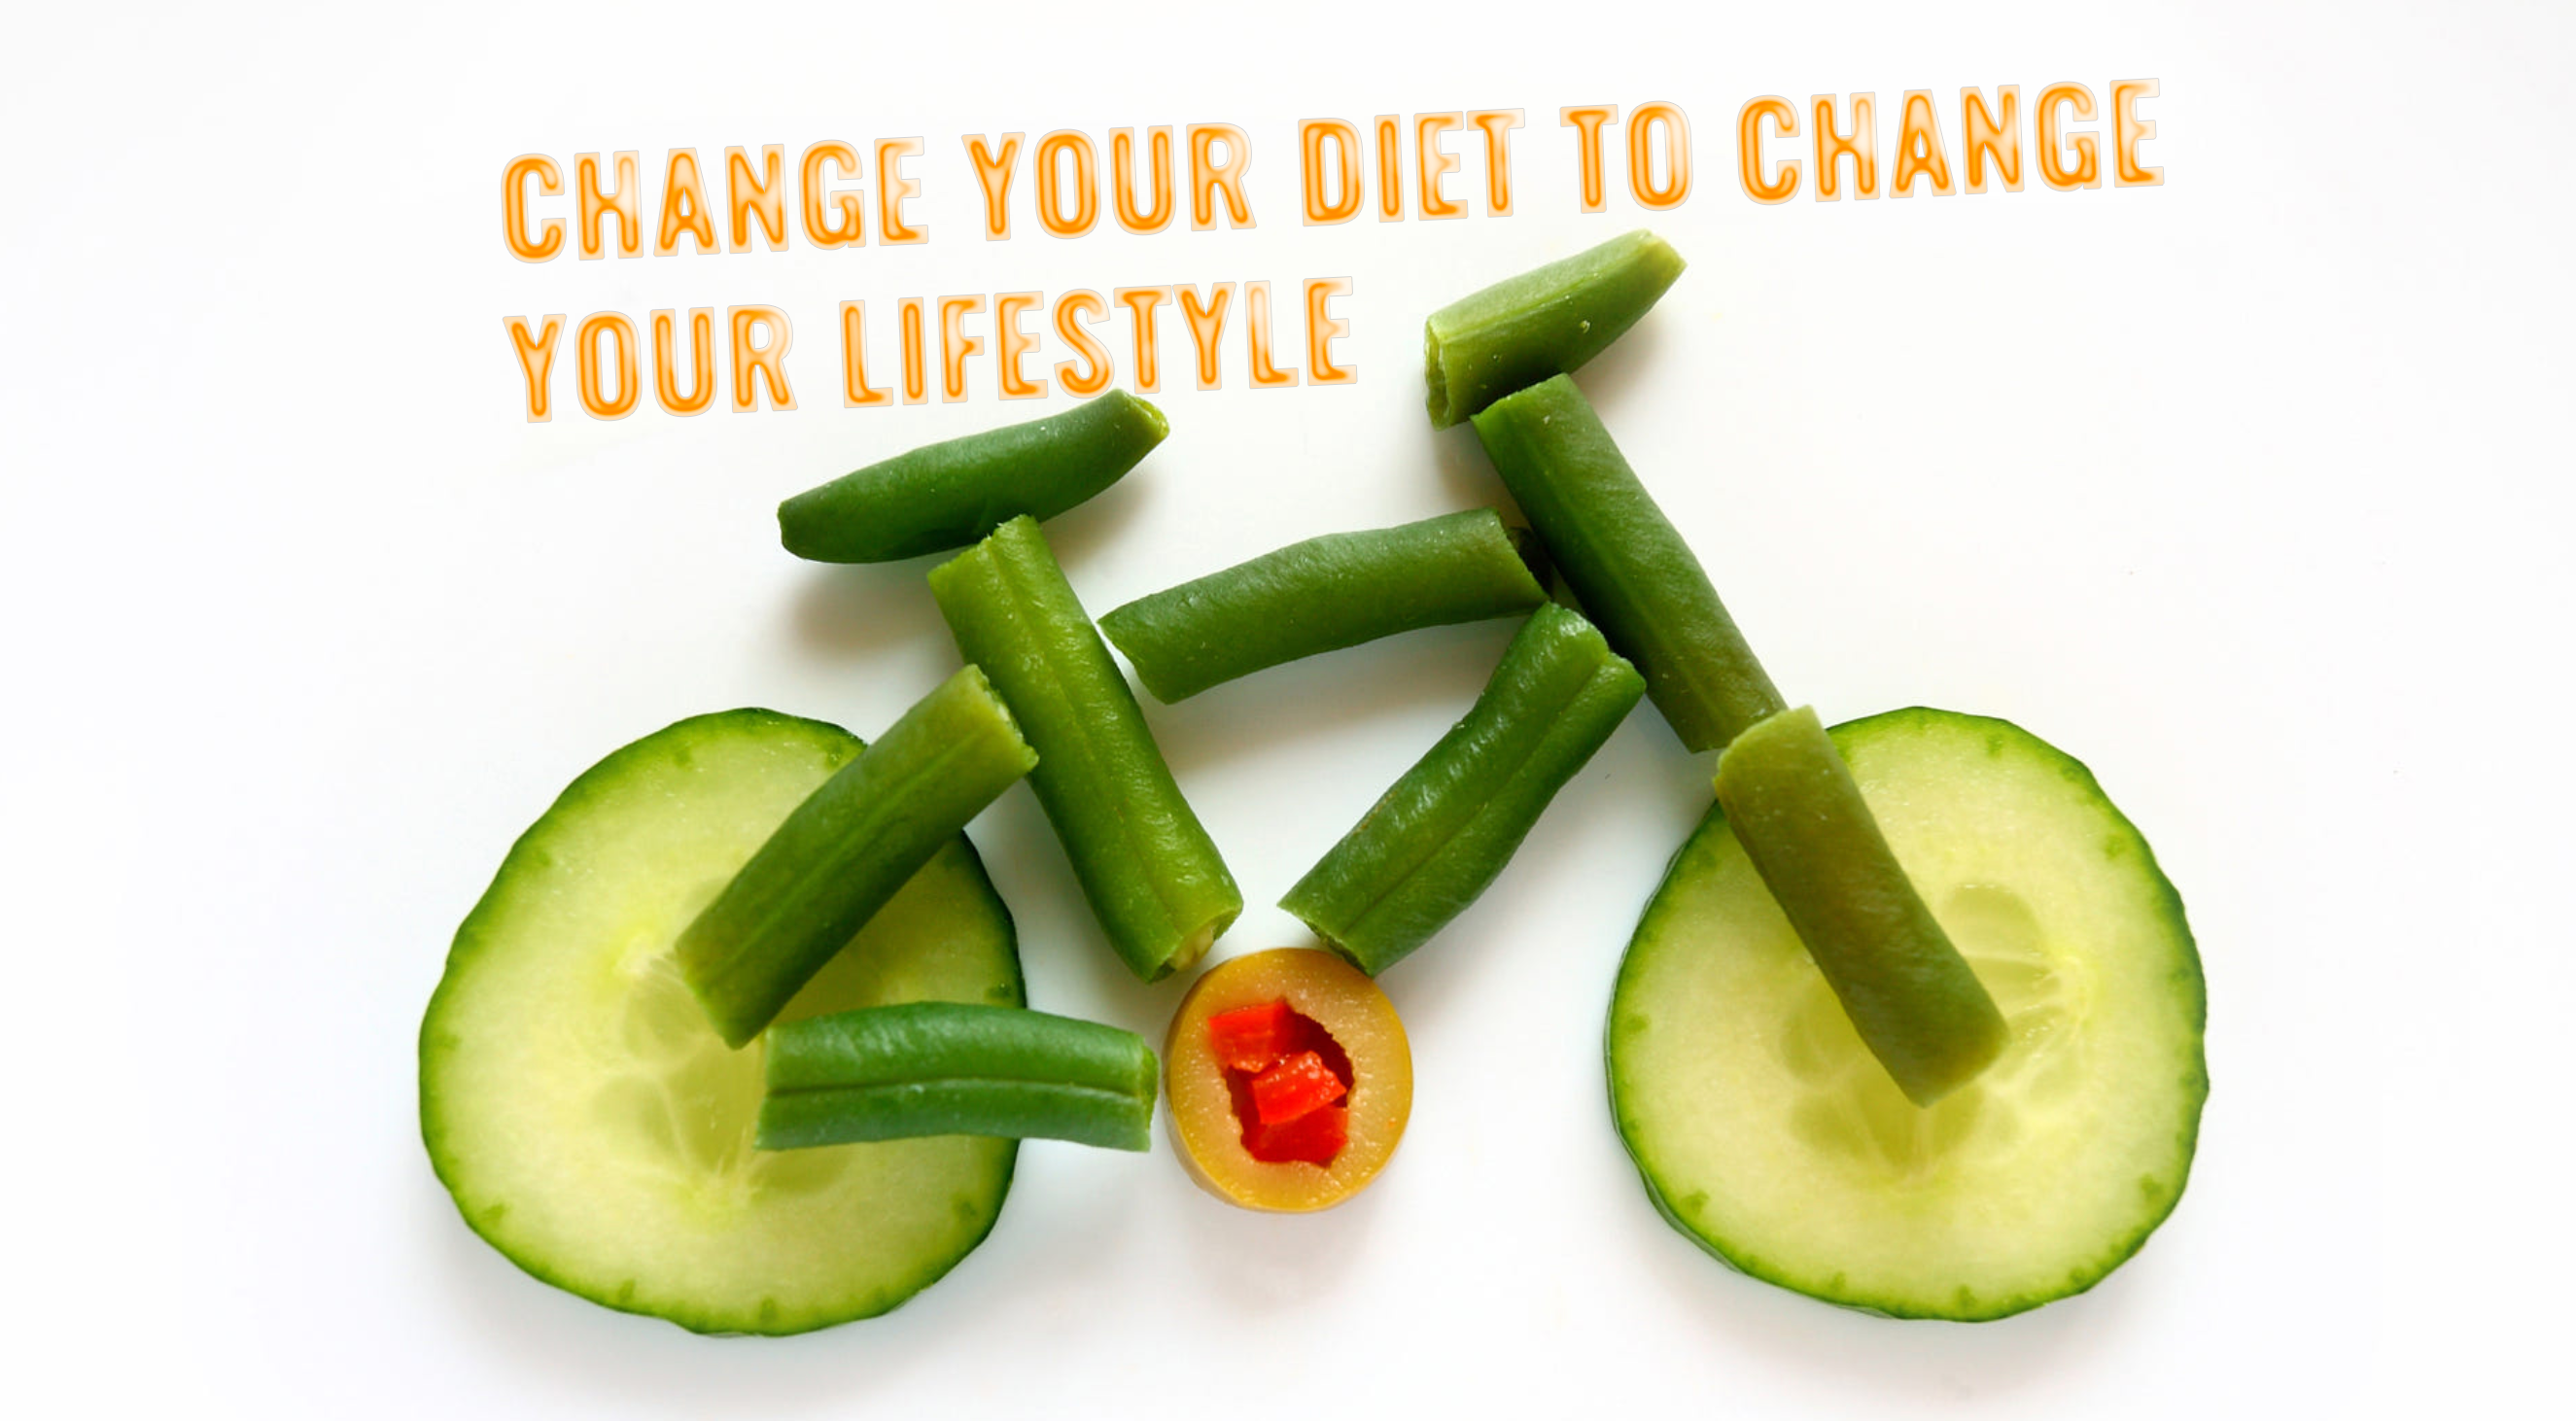 Change Your Diet to Change your Lifestyle